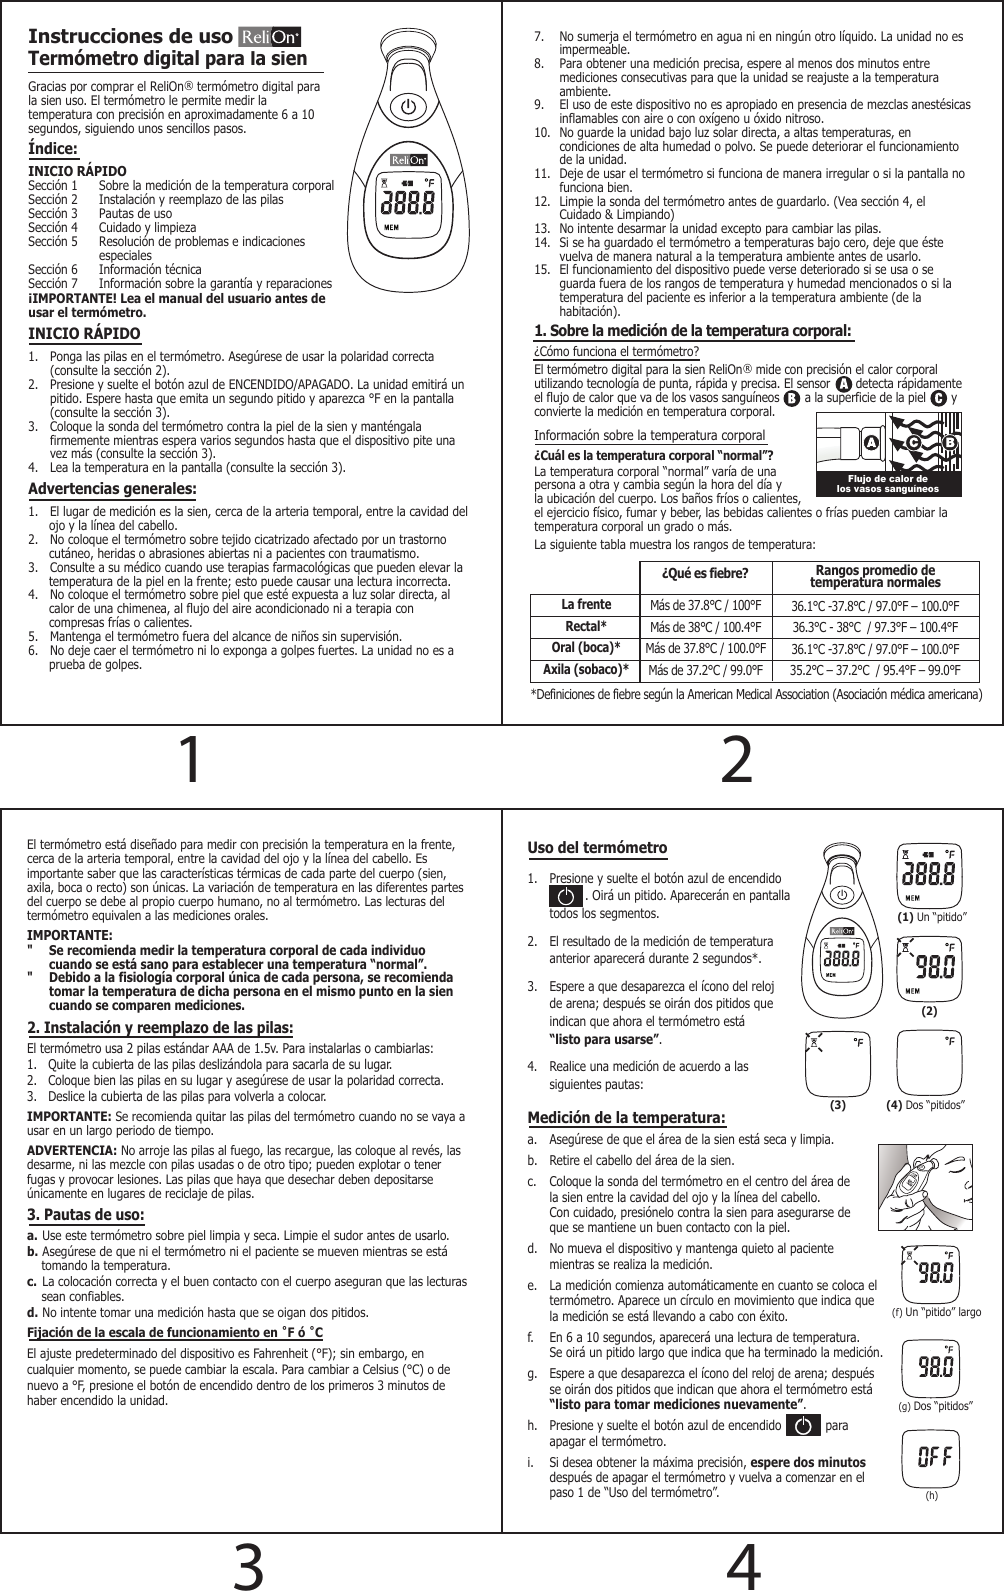 Relion Digital Temple Thermometer Instruction Manual